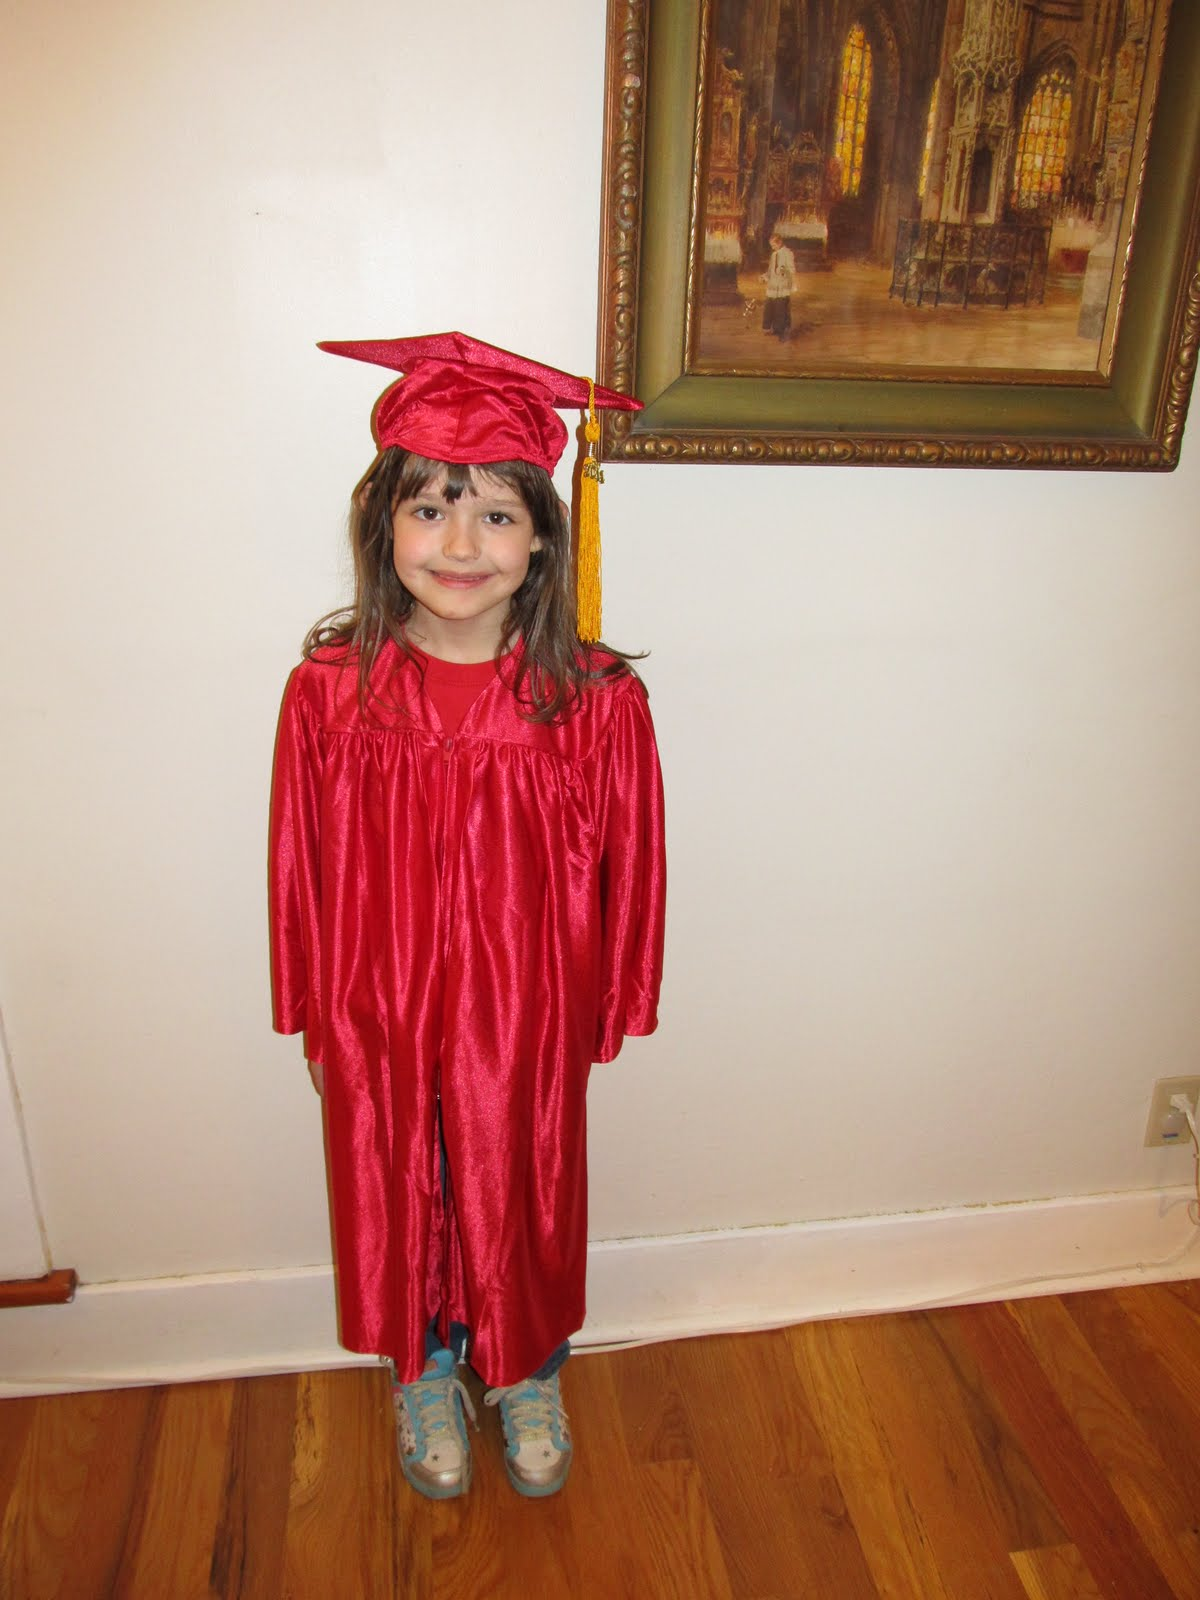 A Number of Things: Kindergarten Graduation